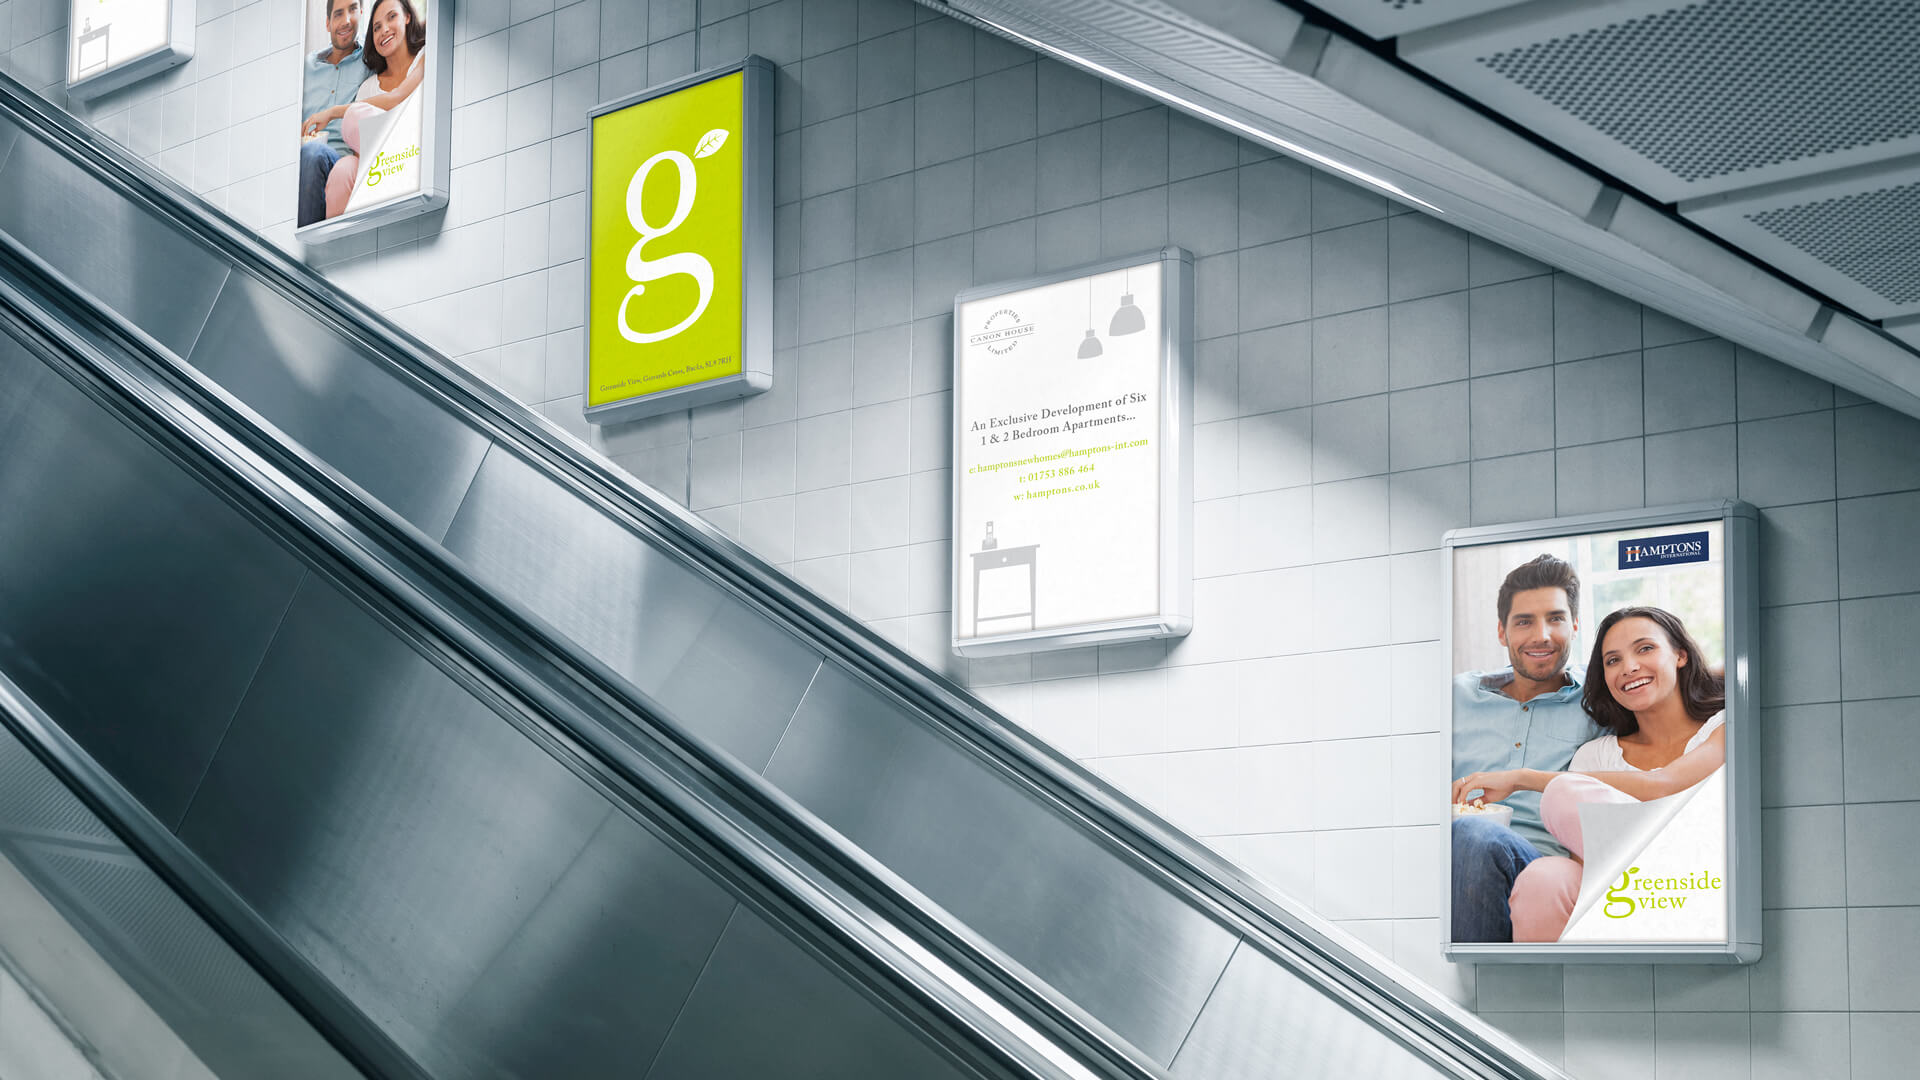 Greenside View Escalator Adverts